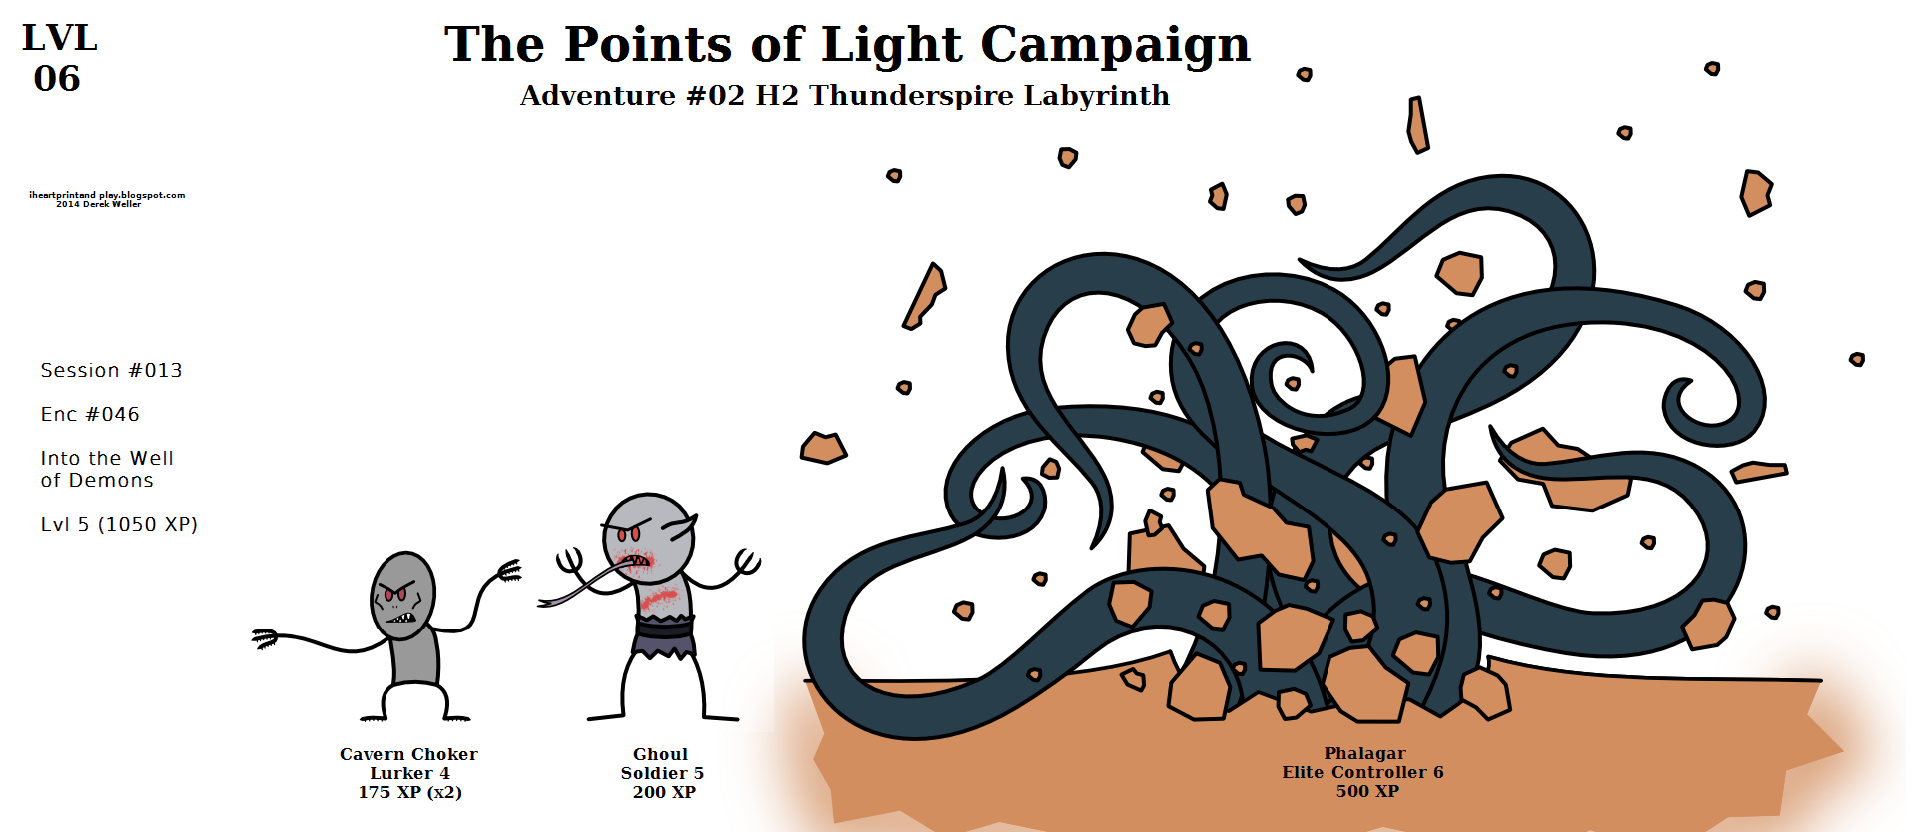 Points_of_Light__003.046_Into_the_Well_of_Demons.png